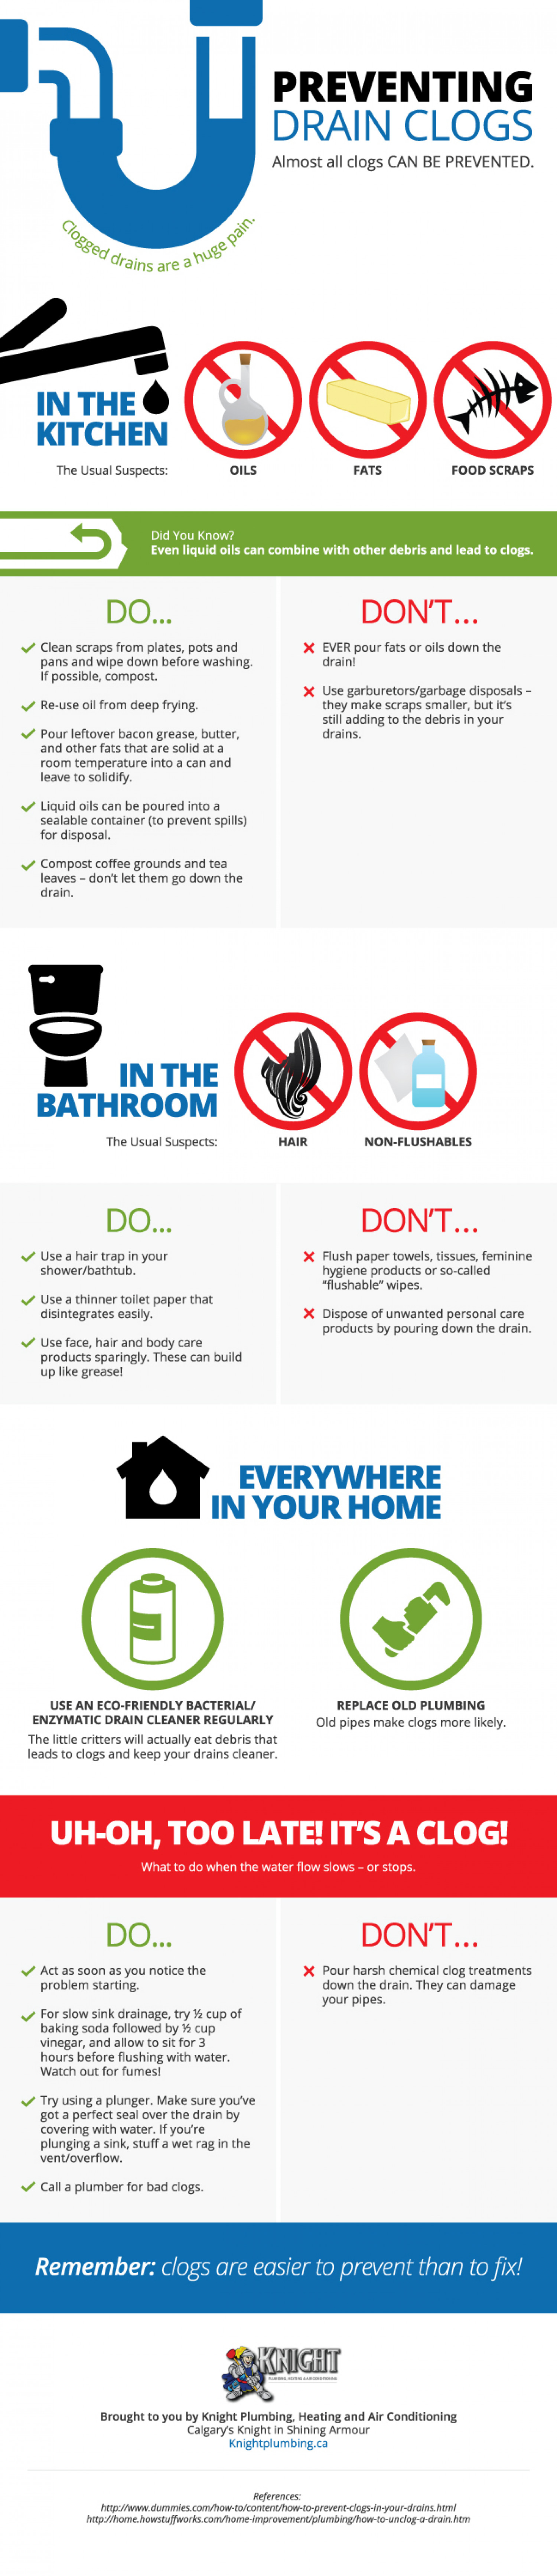 Preventing Clogged Drains In Your Home Infographic